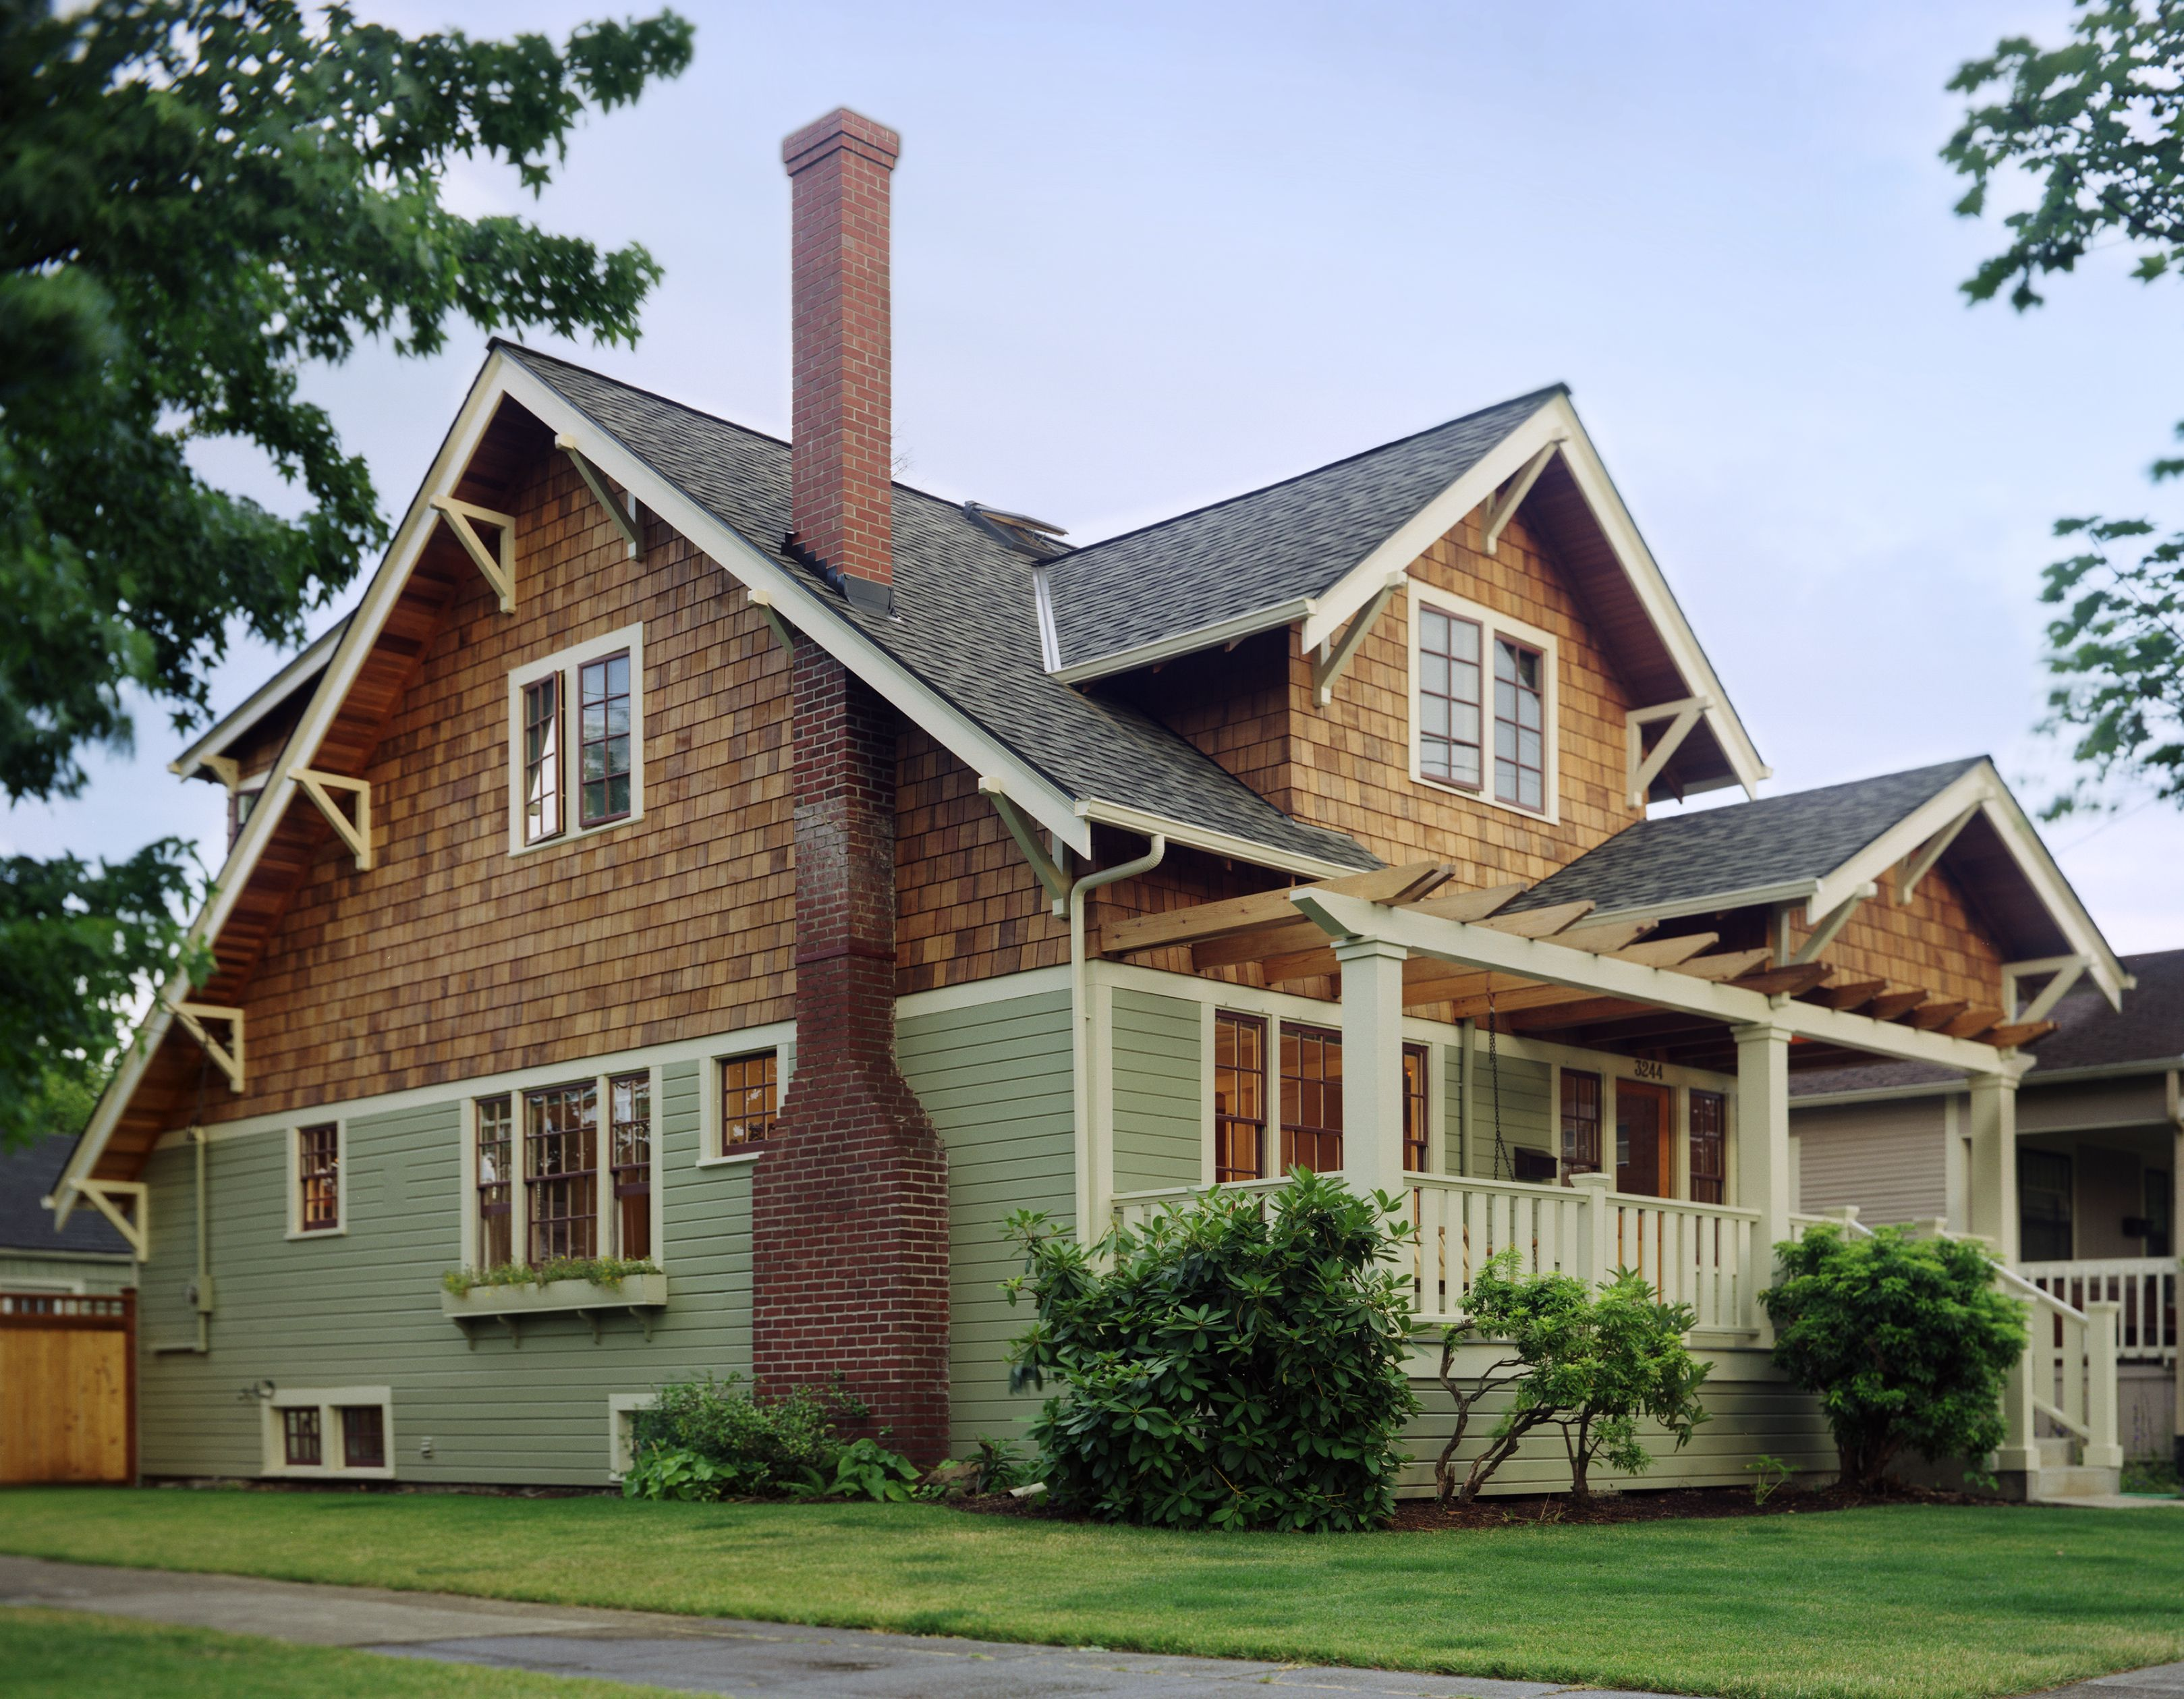 Pacific northwest architecture craftsman style house not for Home architecture styles